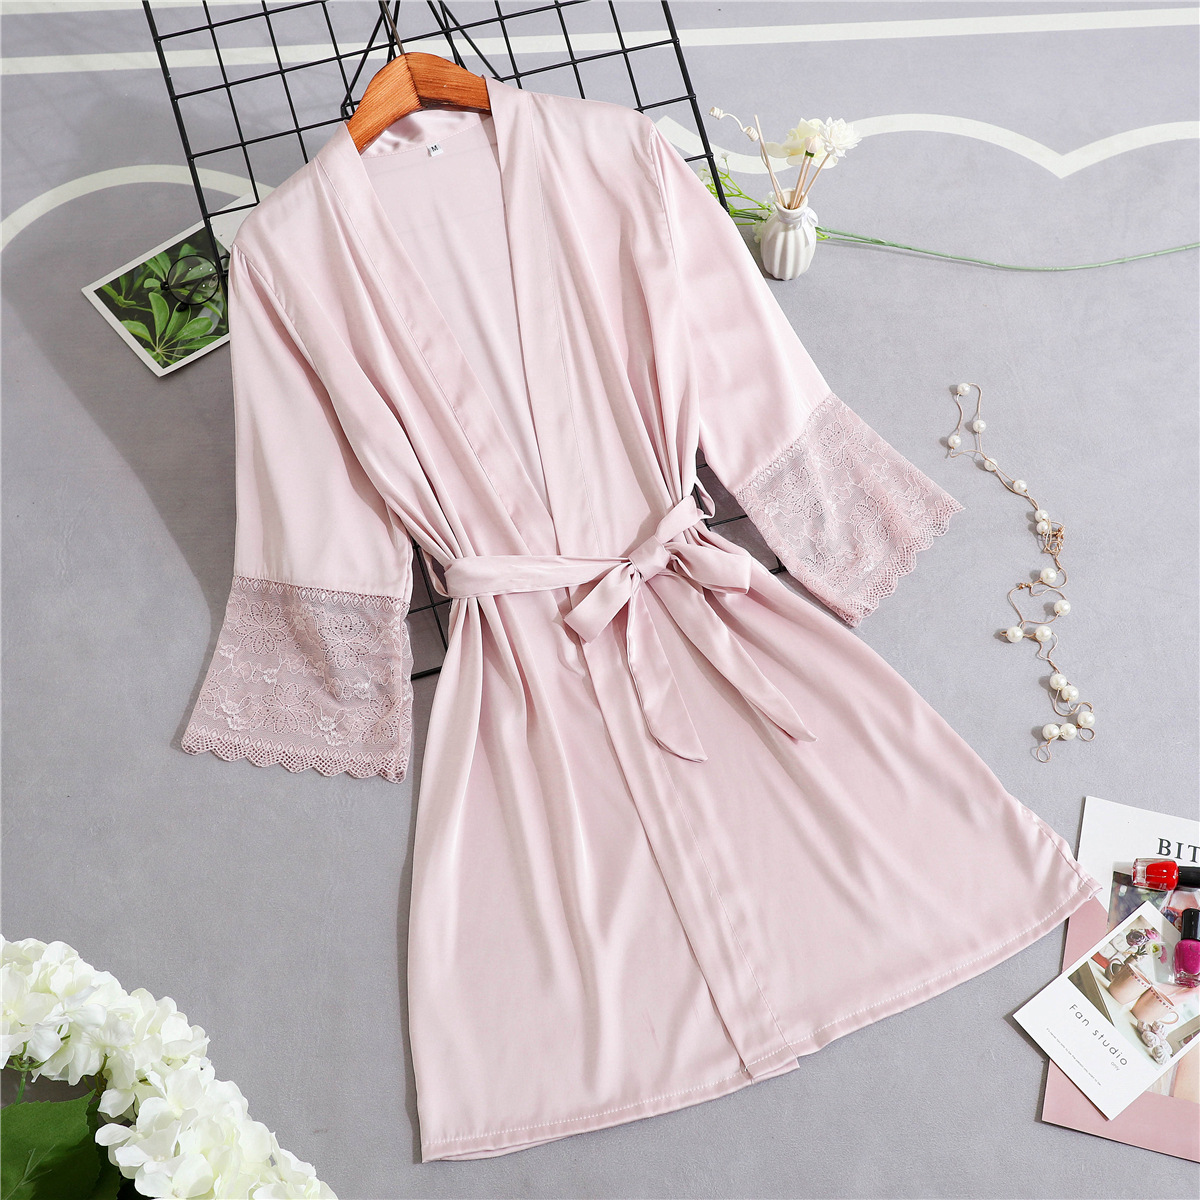 Lace Kimono Gown Mini Half Sleeve Novelty Bride Bridesmaid Wedding Robe Casual V-Neck Home Clothing Soft Sleepwear Negligee